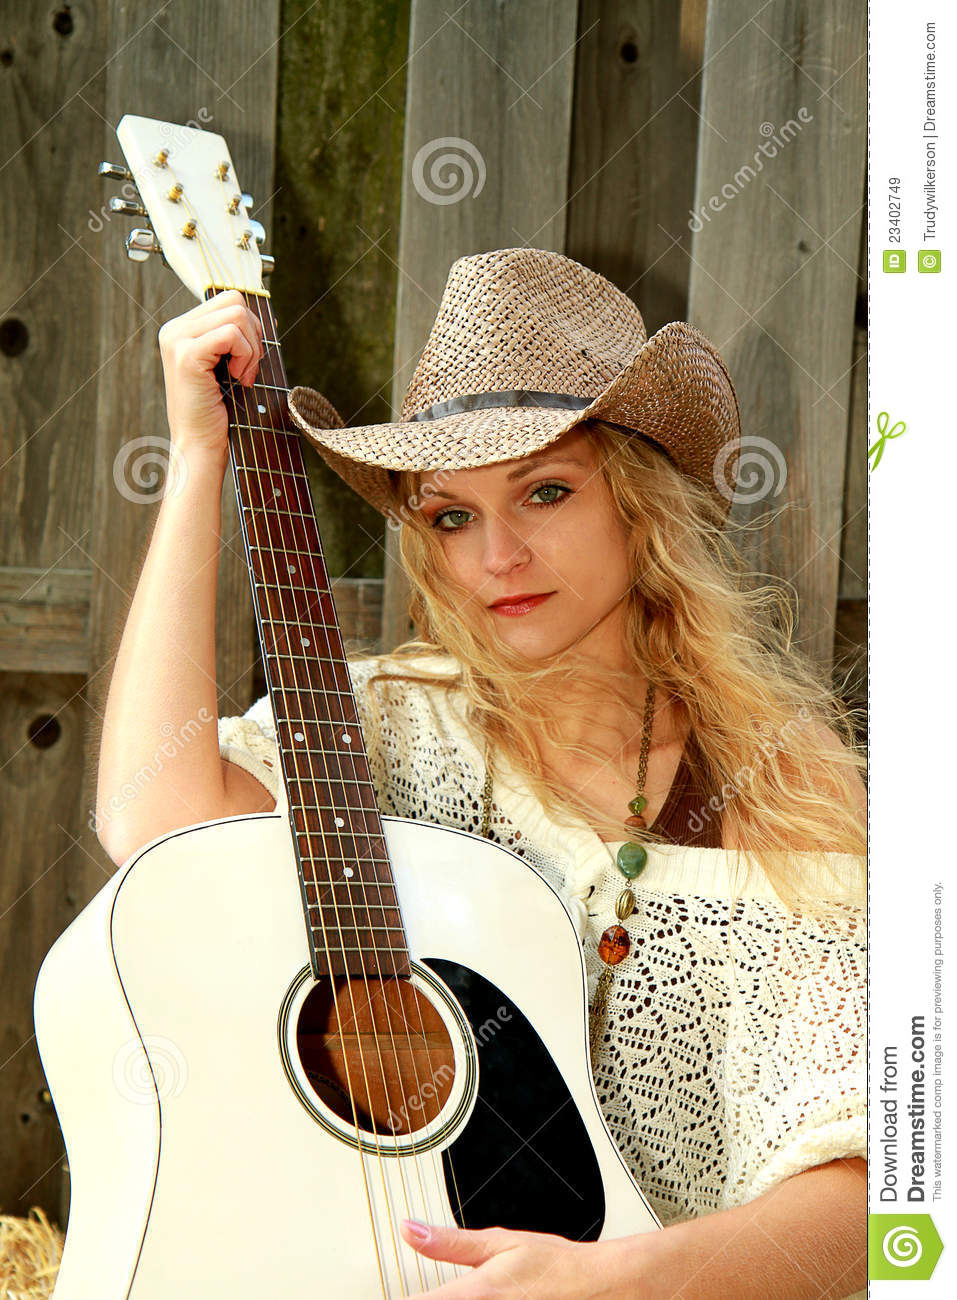 Pretty Girl Wallpaper Free Download Cowgirl And Guitar Stock Image Image Of Weave Hair